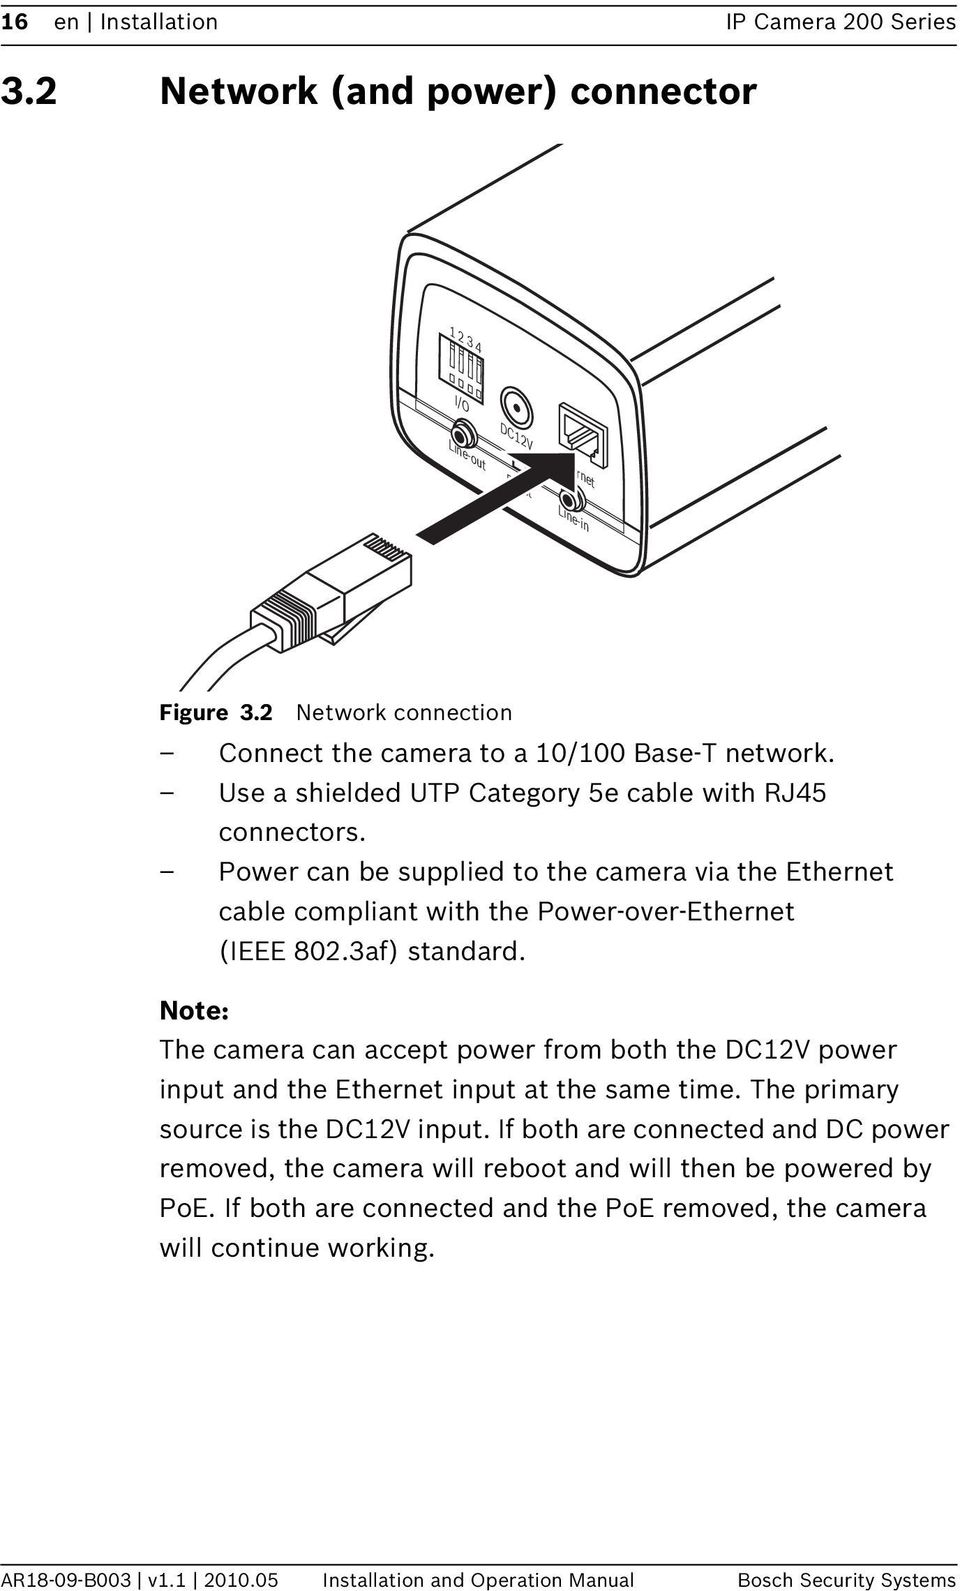 Ip camera 200 series nbc 255 p installation and operation manual pdf installation and operation manual bosch security systems power can be supplied to the camera via the ethernet cable compliant with the power cheapraybanclubmaster Gallery